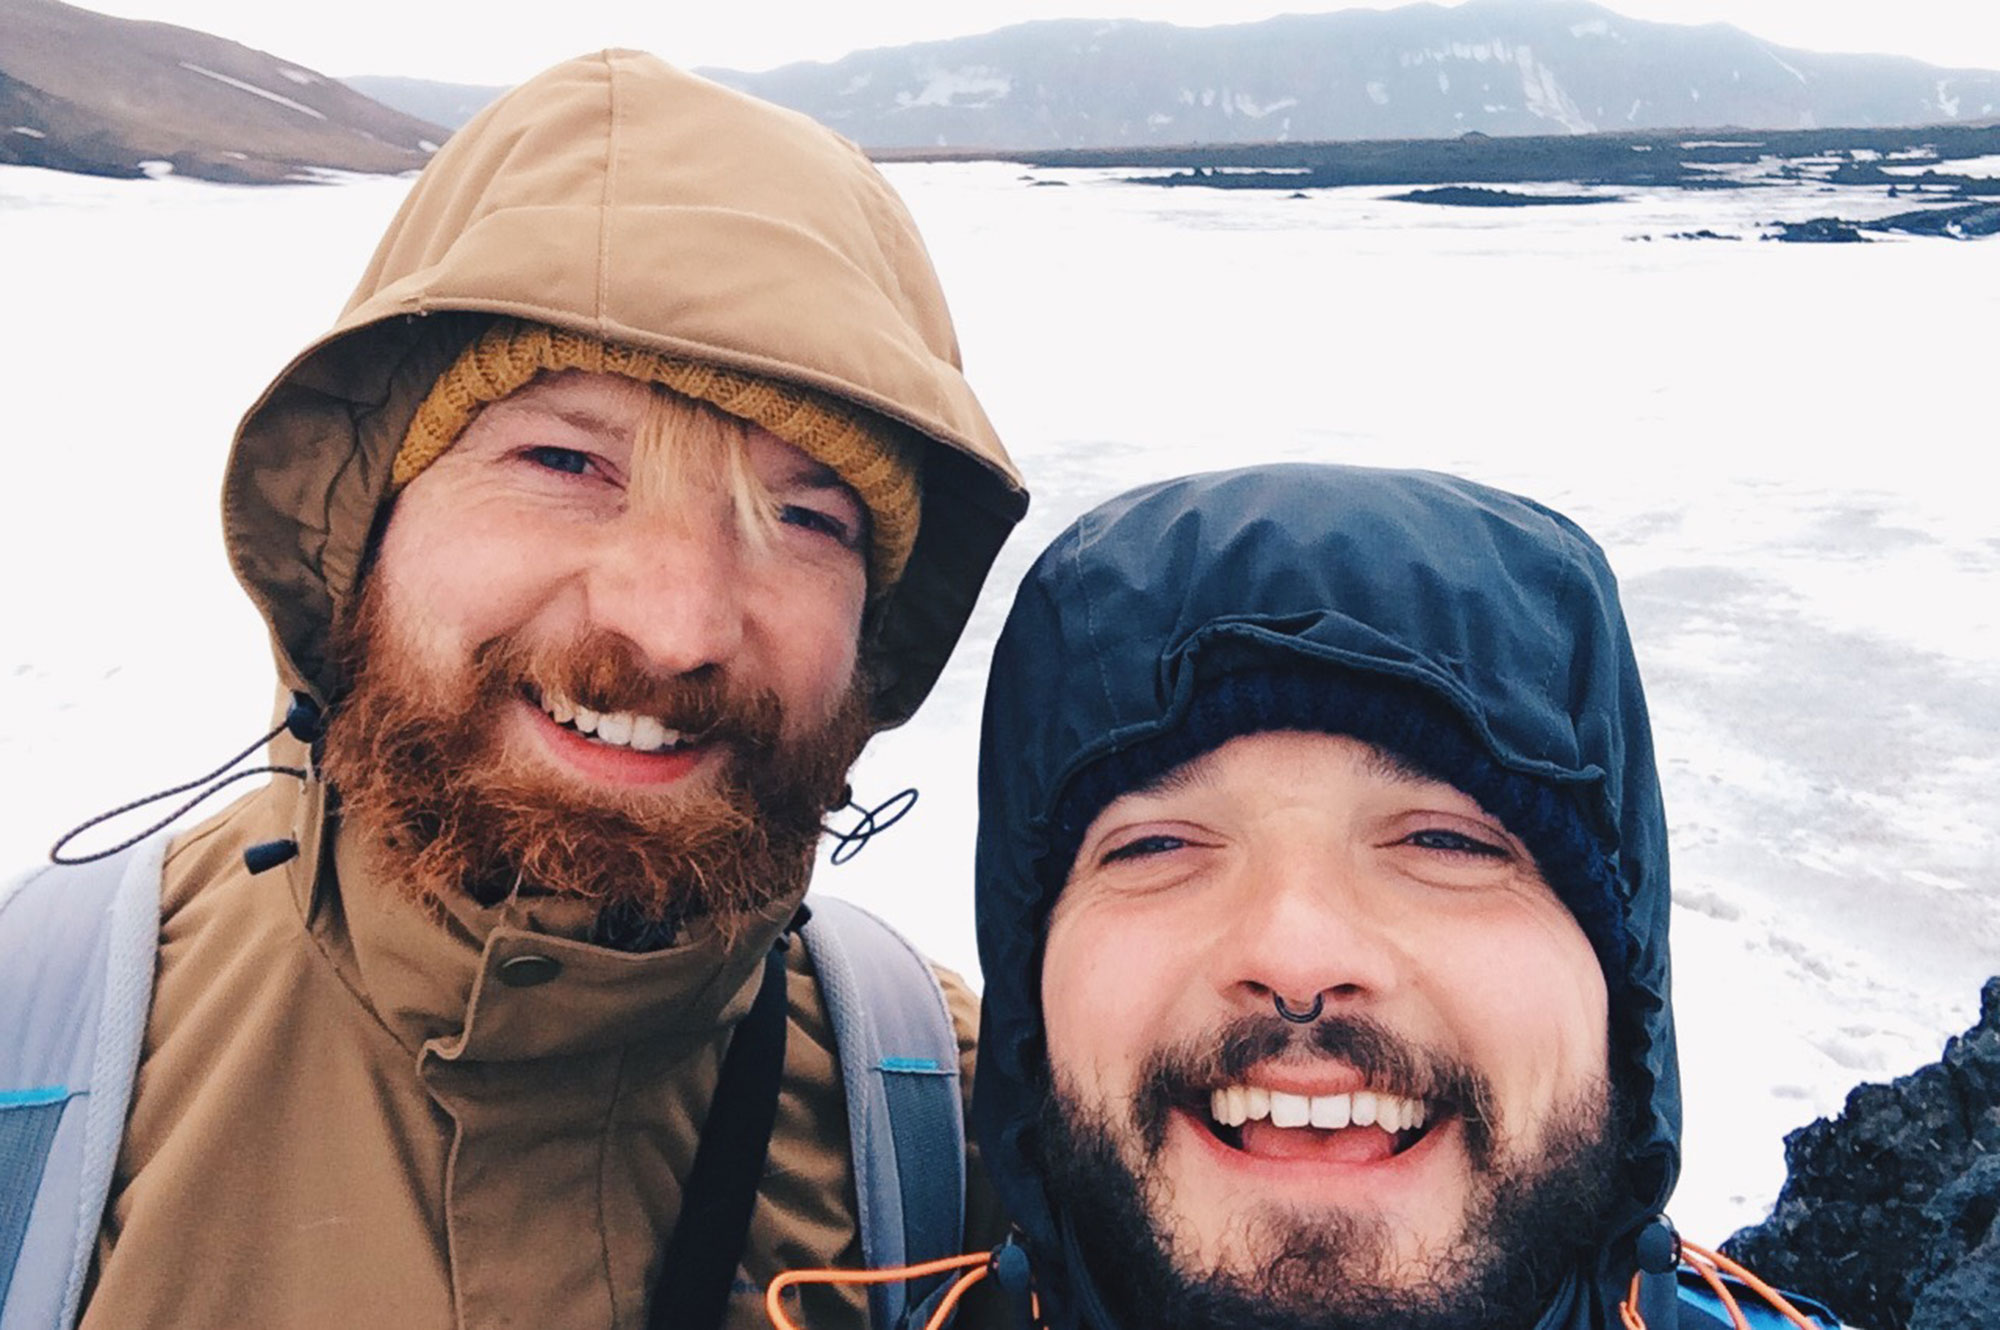 Gay Couple exploring Central North Iceland © CoupleofMen.com